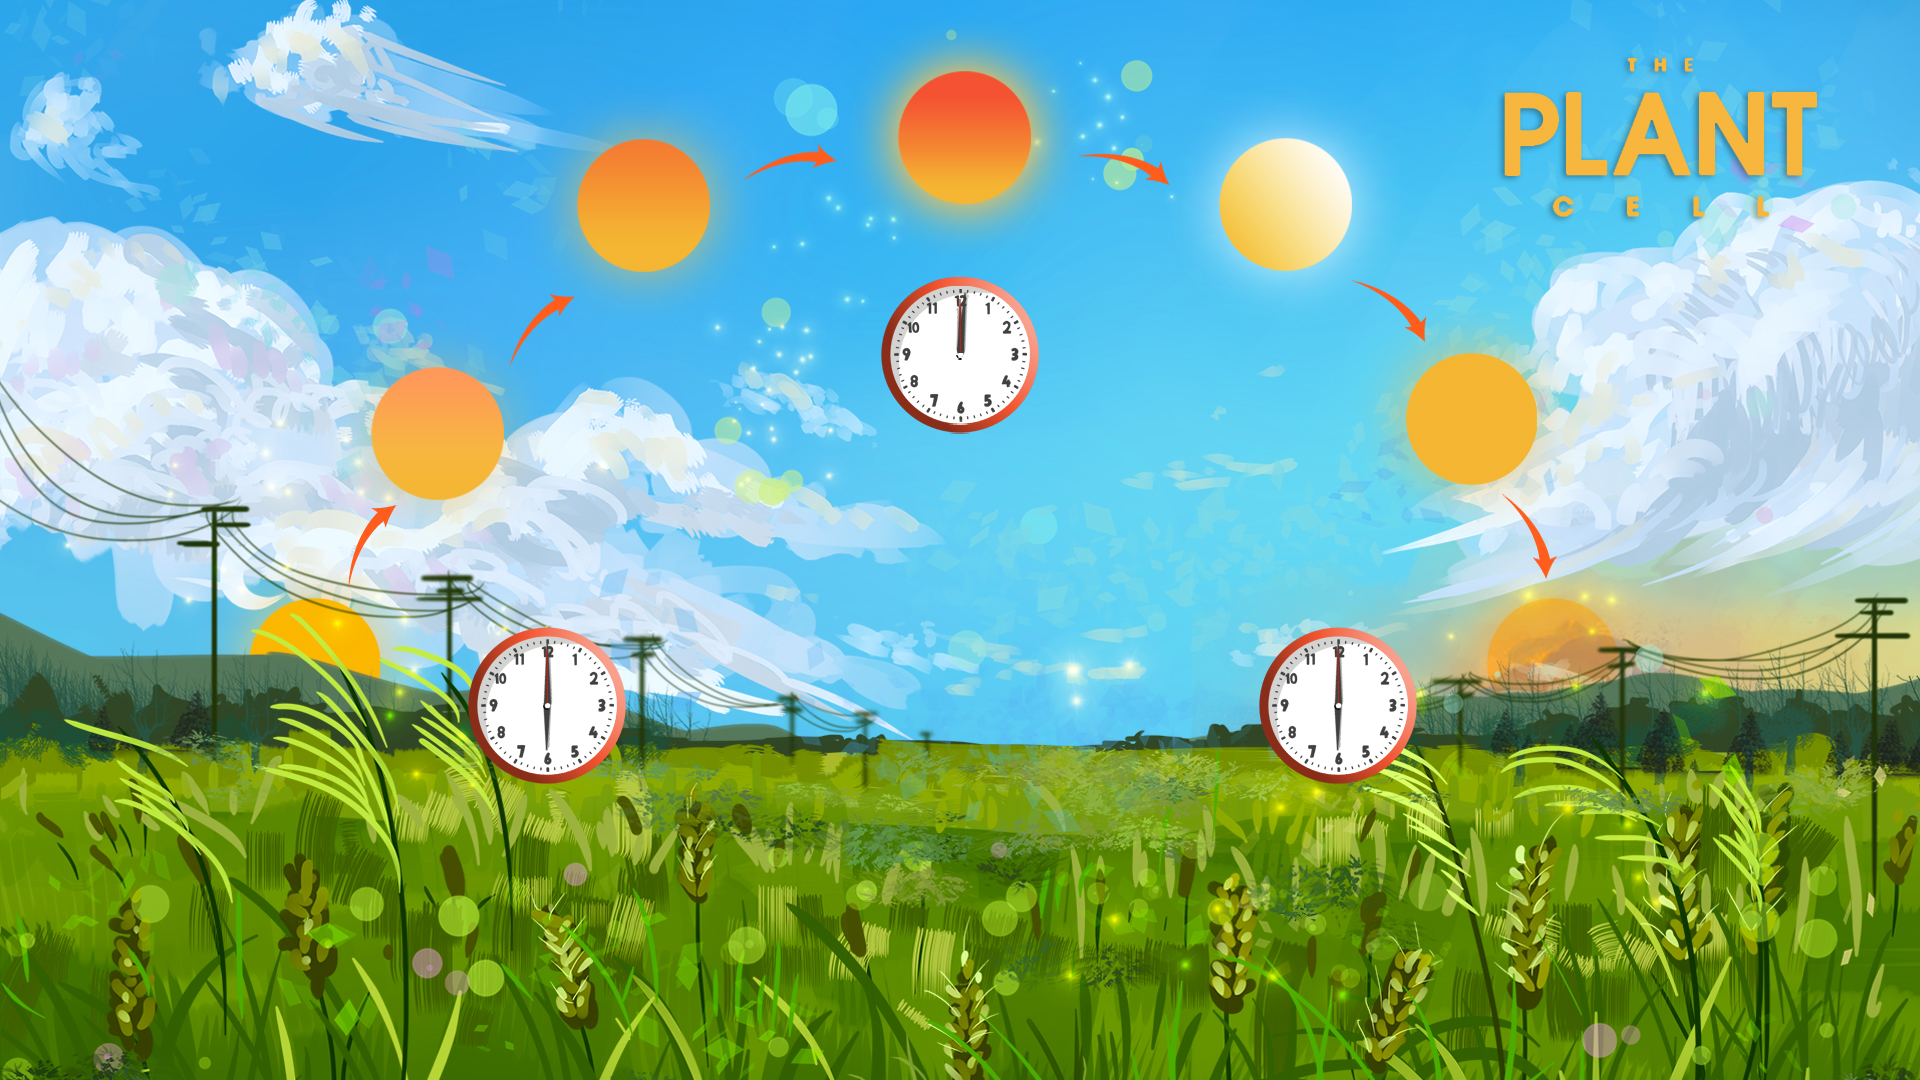 Novel mechanism found, showing how plants grow using circadian clock